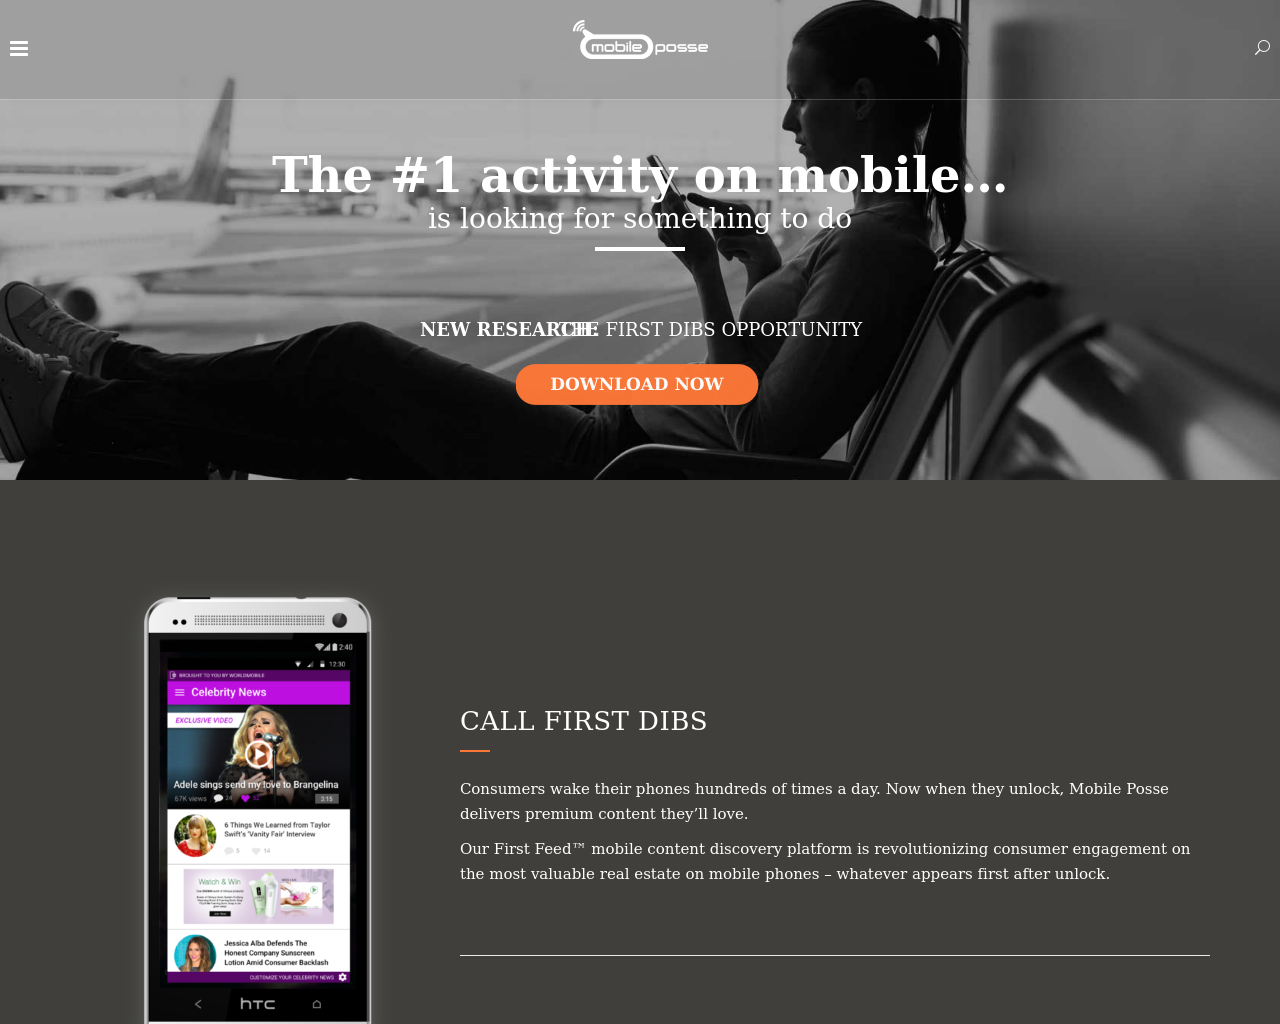 Mobile-Posse-Advertising-Reviews-Pricing